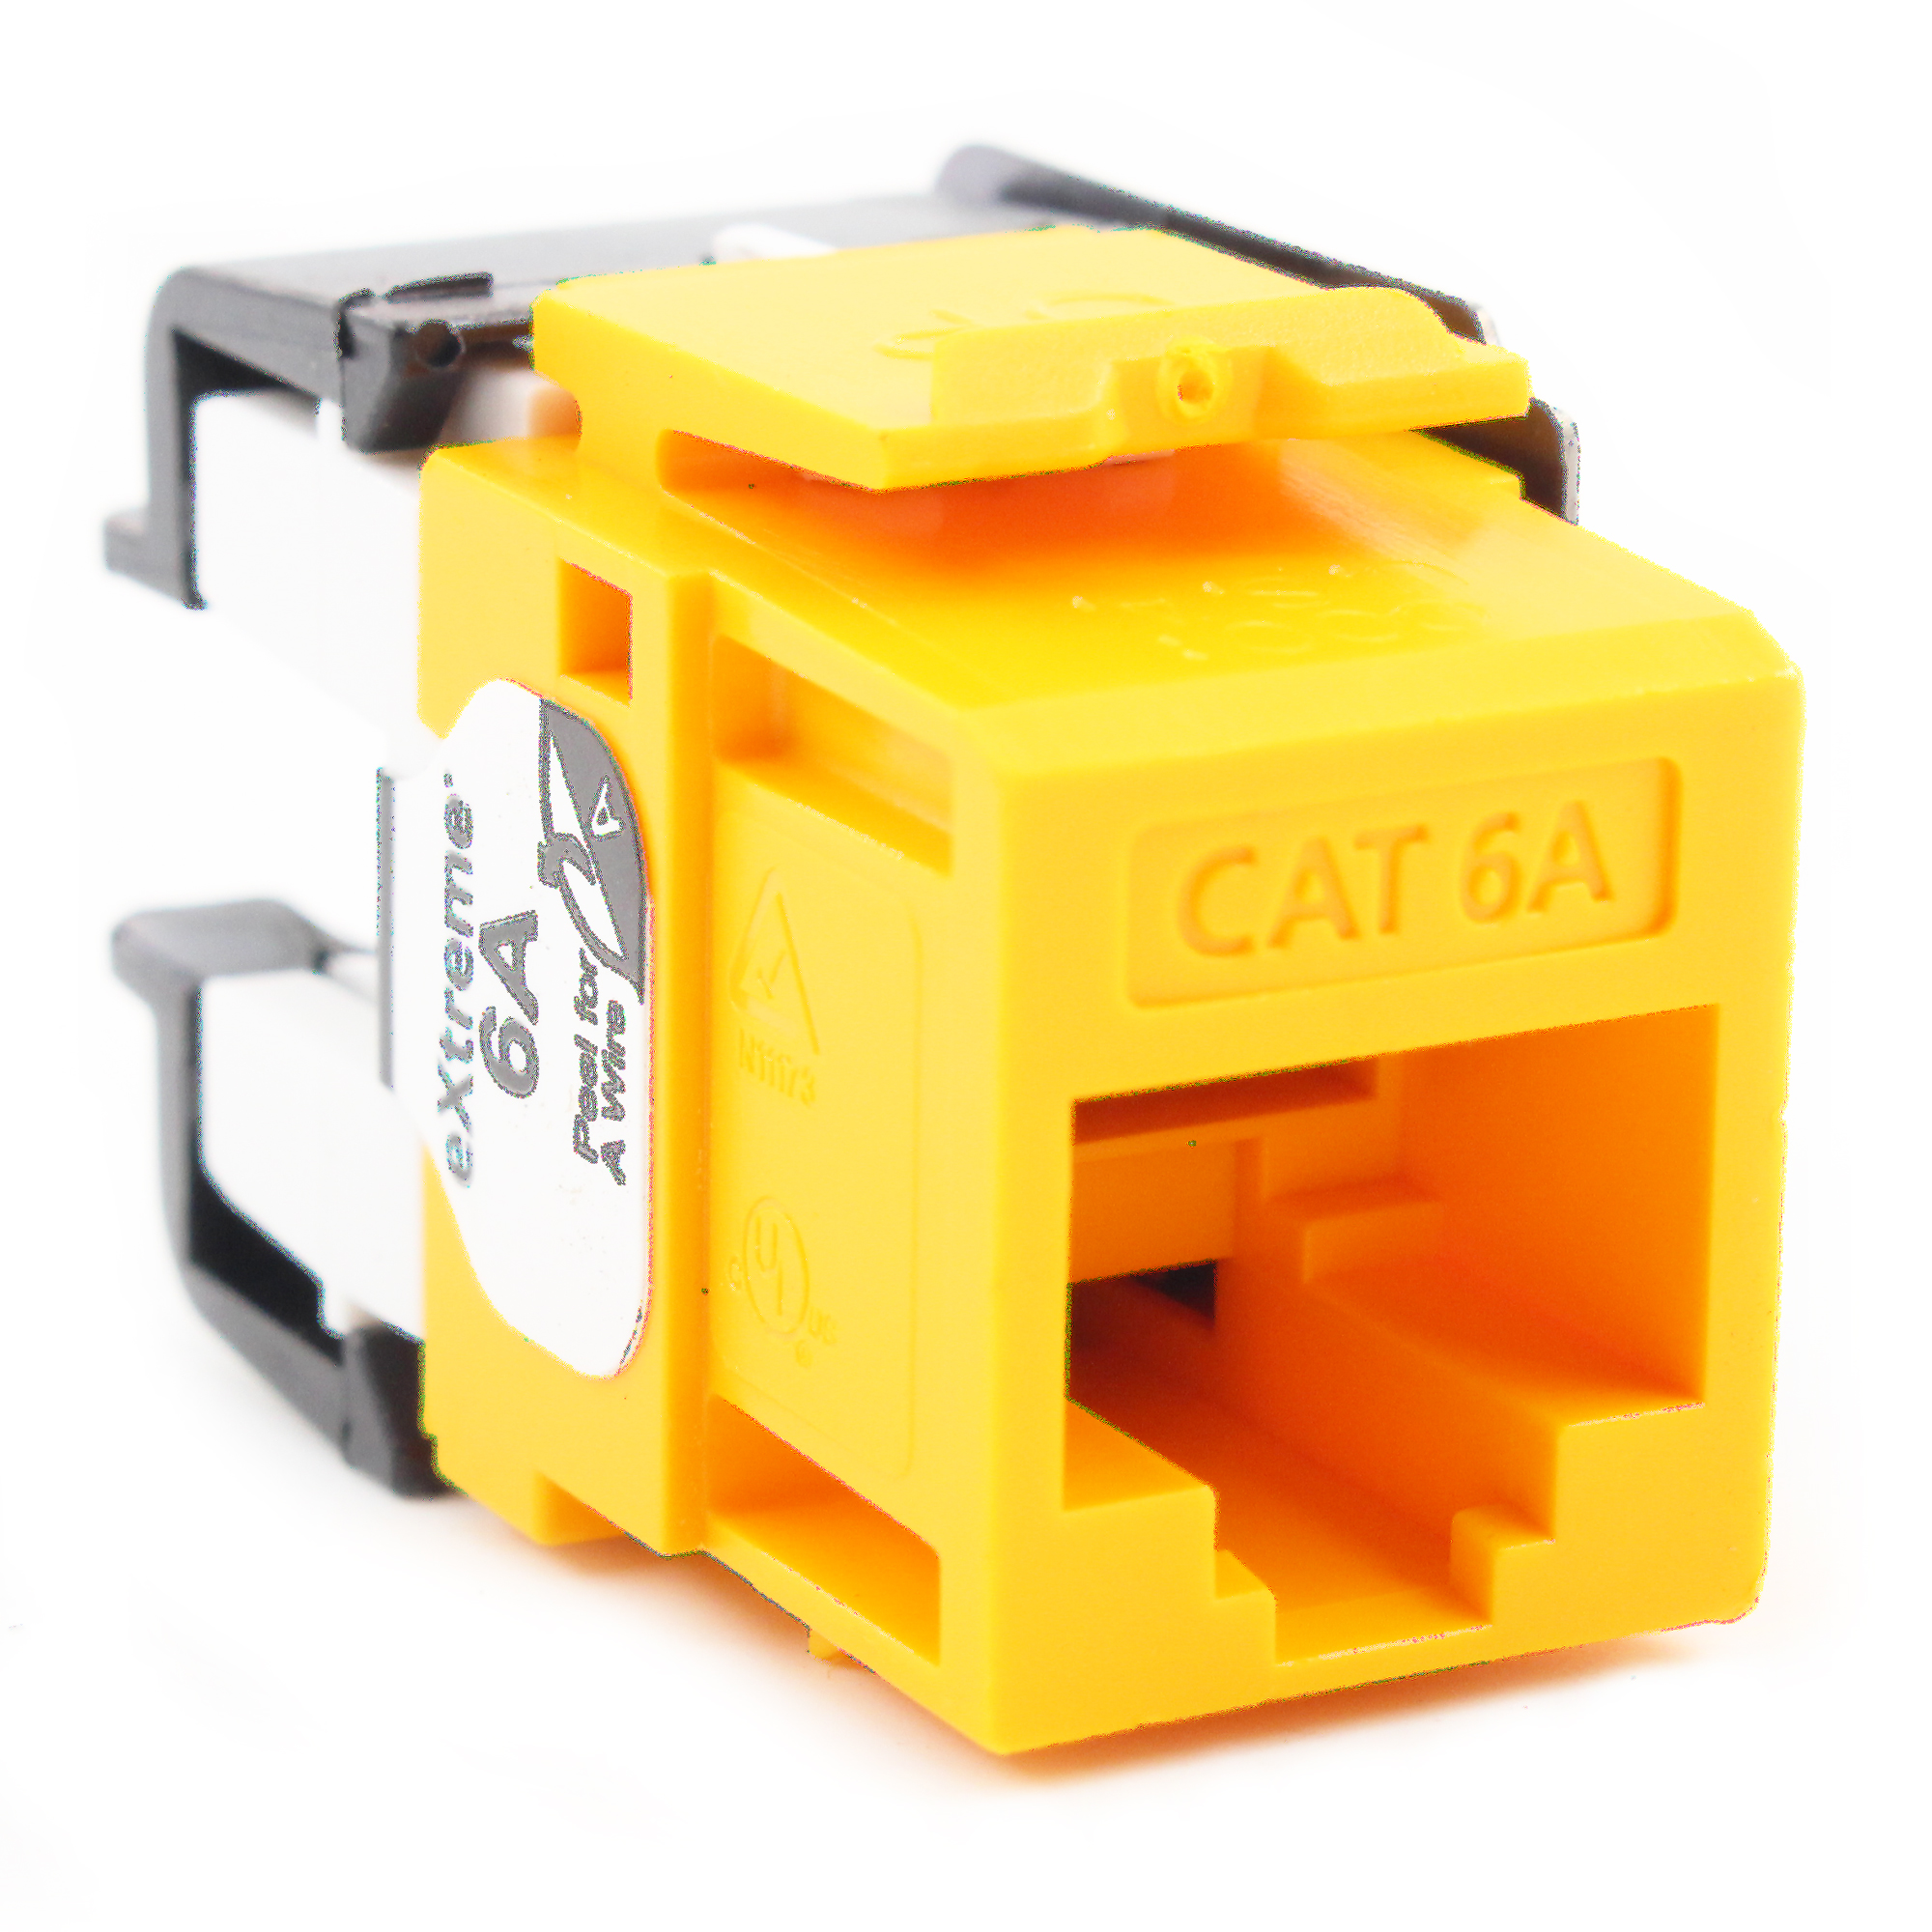 Leviton Yellow Cat 6A 10G Quickport Jack Cat6A RJ45 6110G-RY6